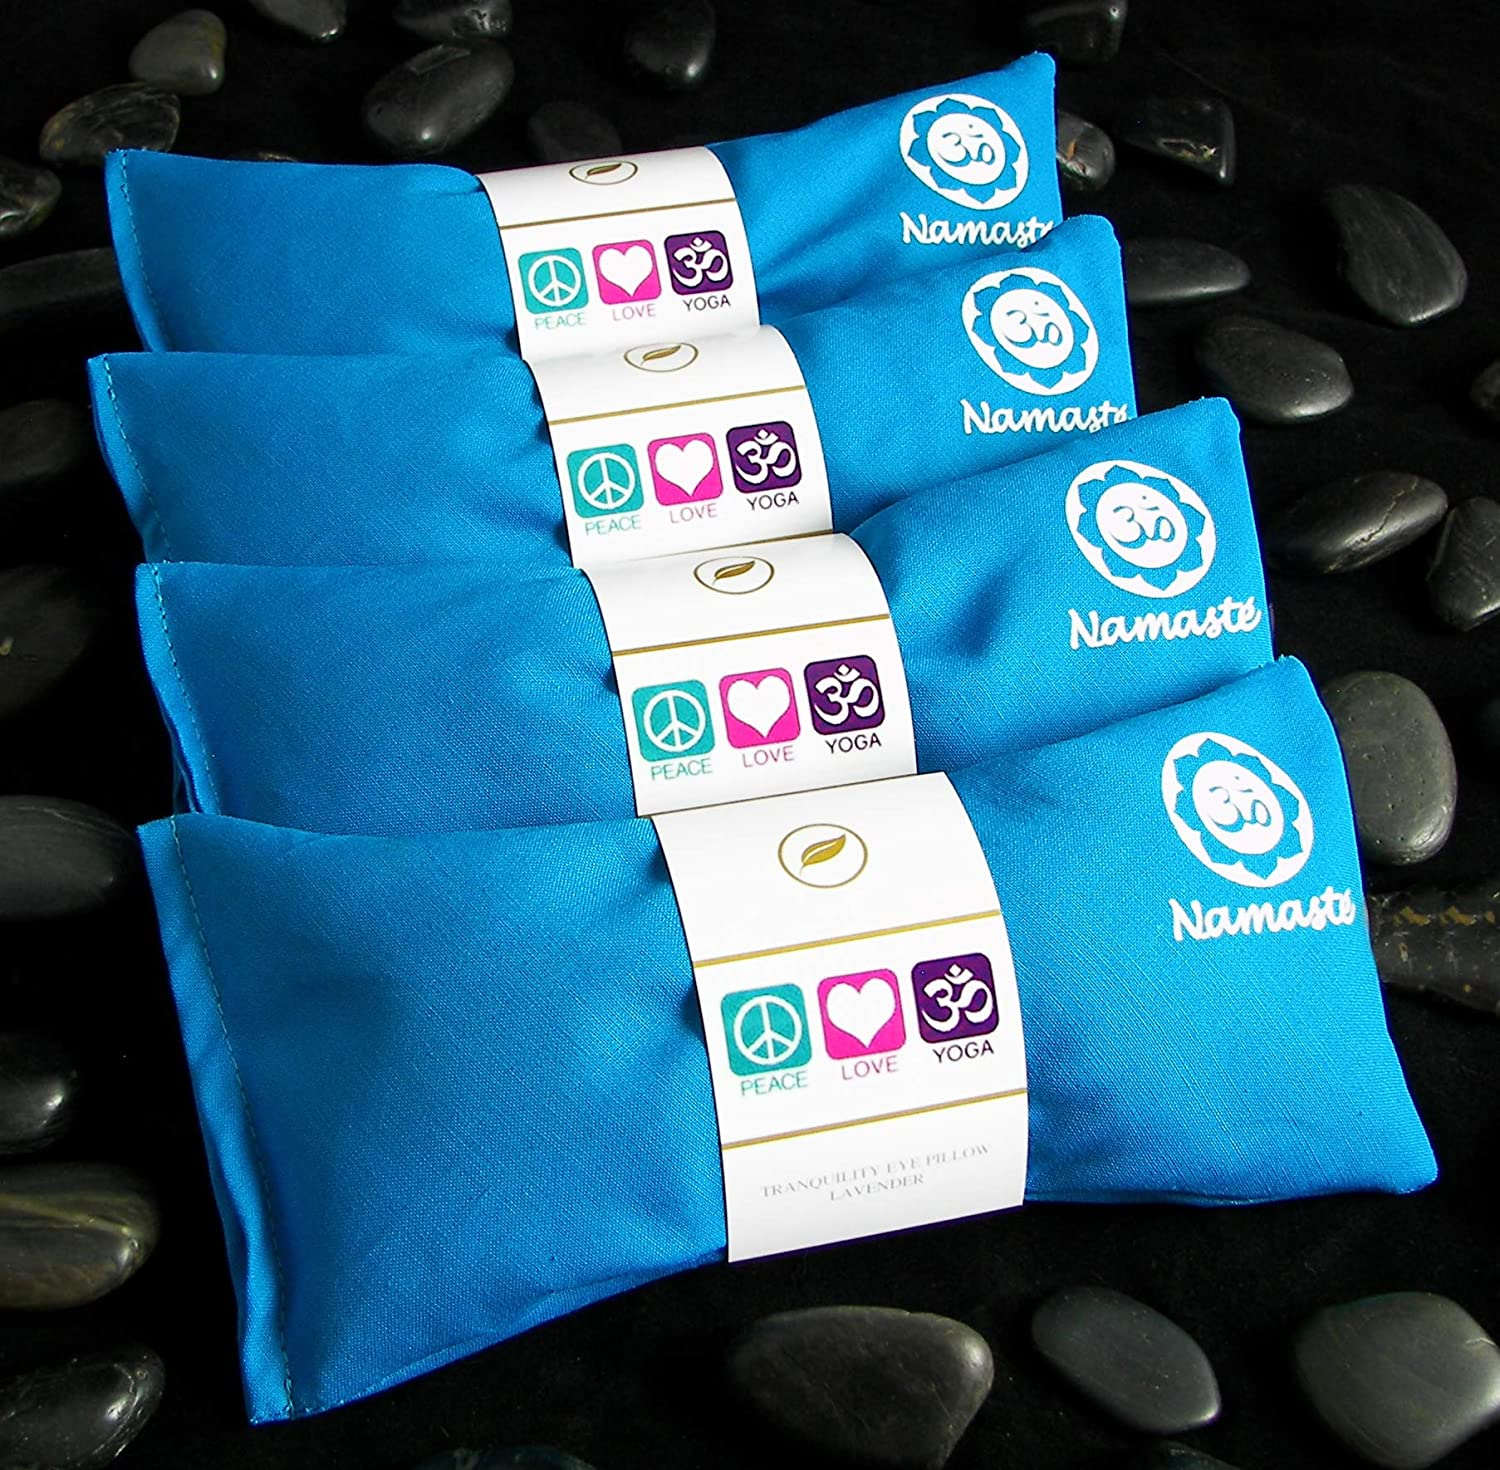 Happy Wraps Namaste Yoga Eye Pillows - Lavender Eye Pillows for Yoga